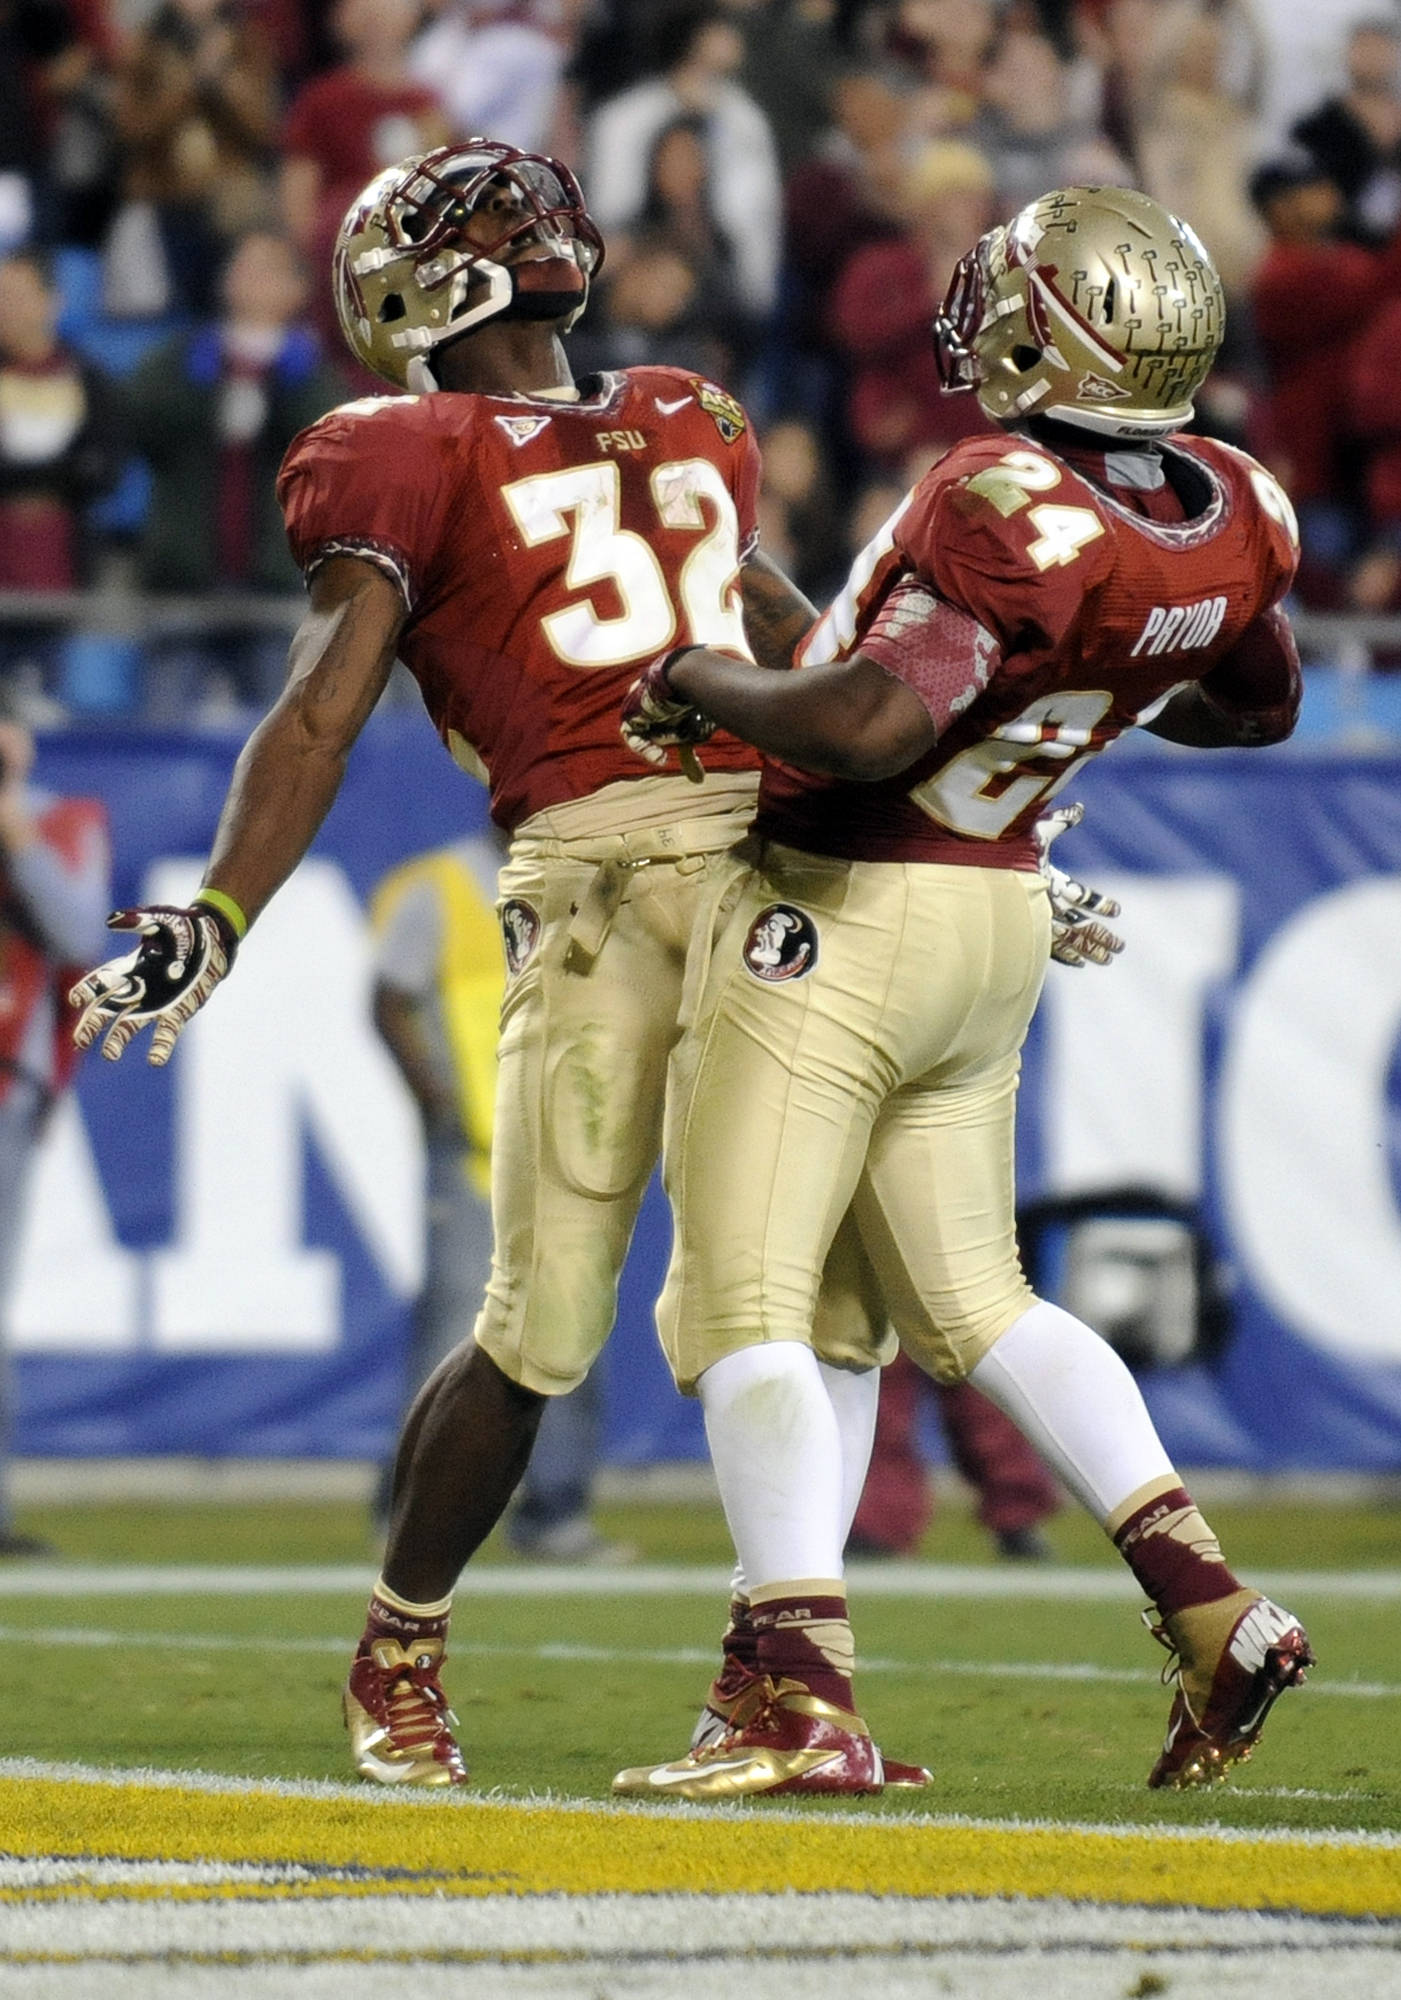 Florida State's James Wilder Jr. (32) celebrates his touchdown run with teammate Lonnie Pryor (24) during the first half. (AP Photo/Mike McCarn)